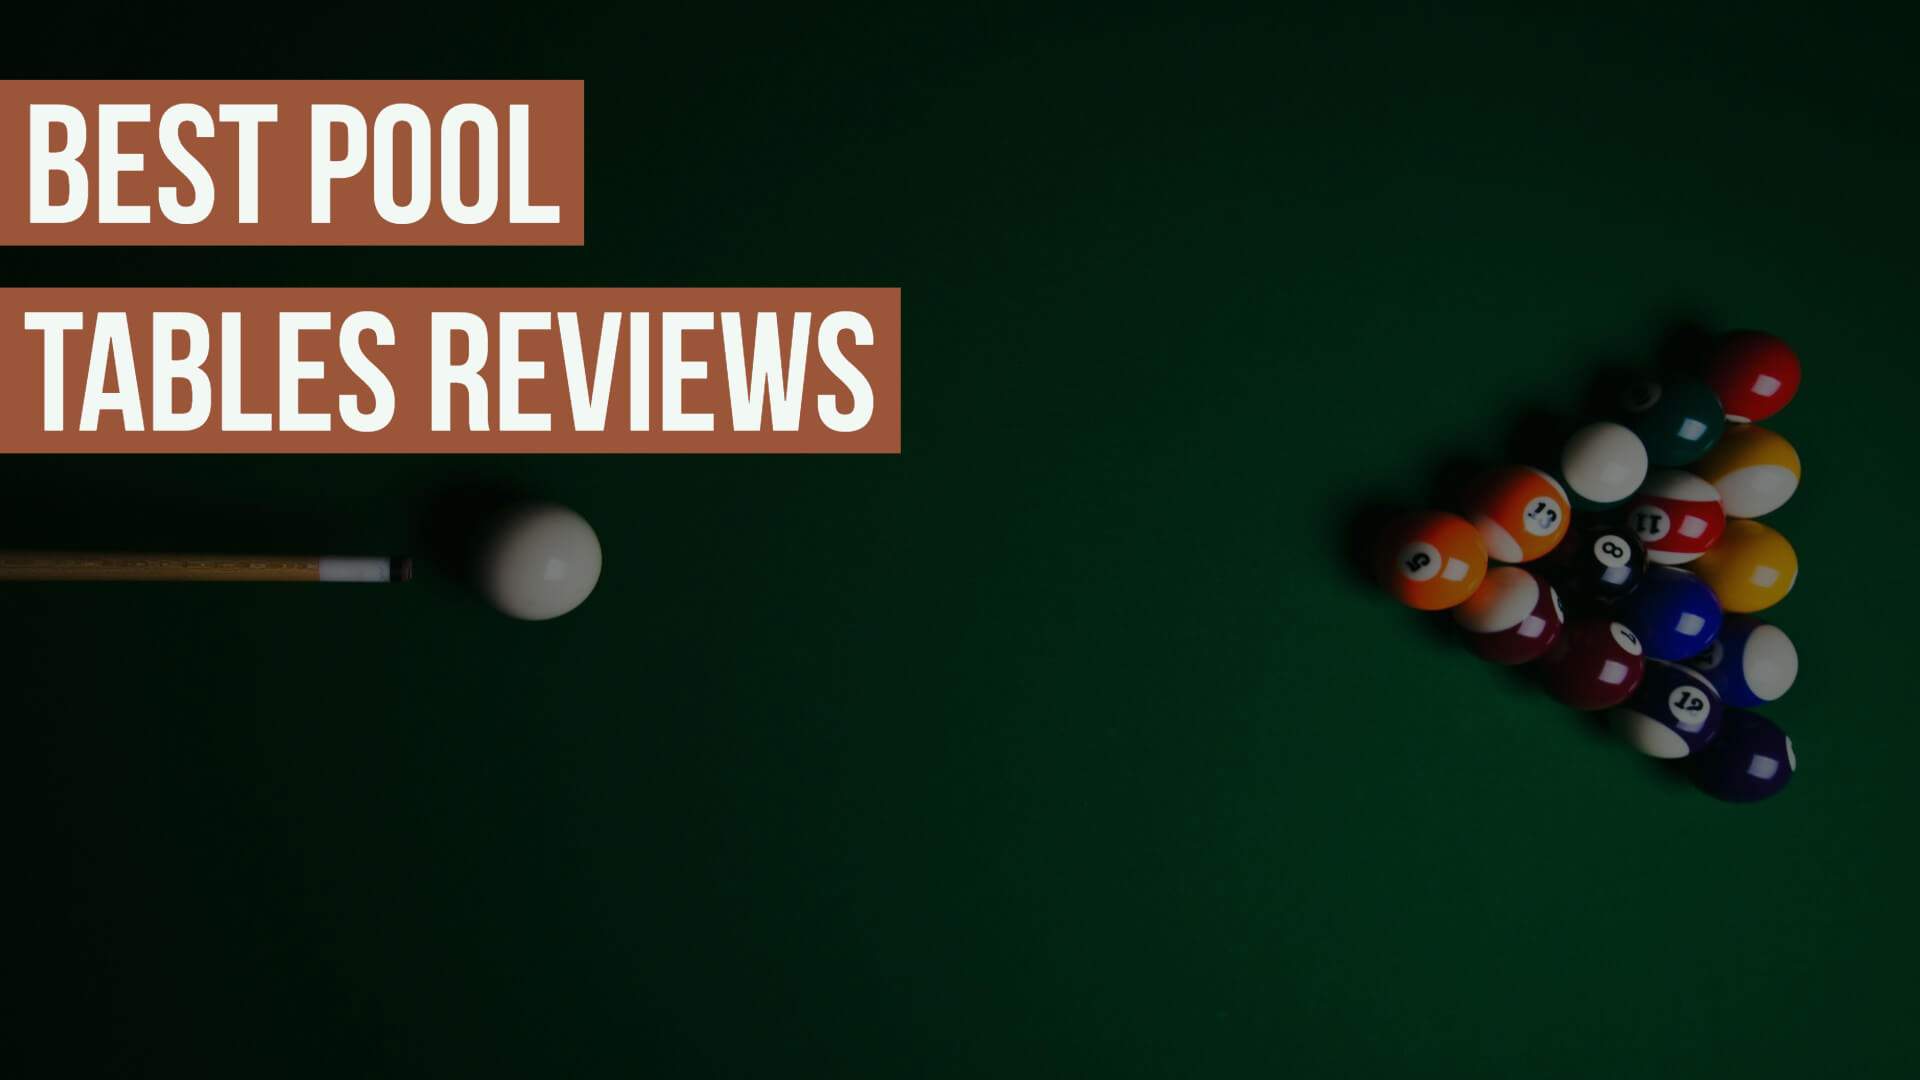 Best Pool Tables Reviews